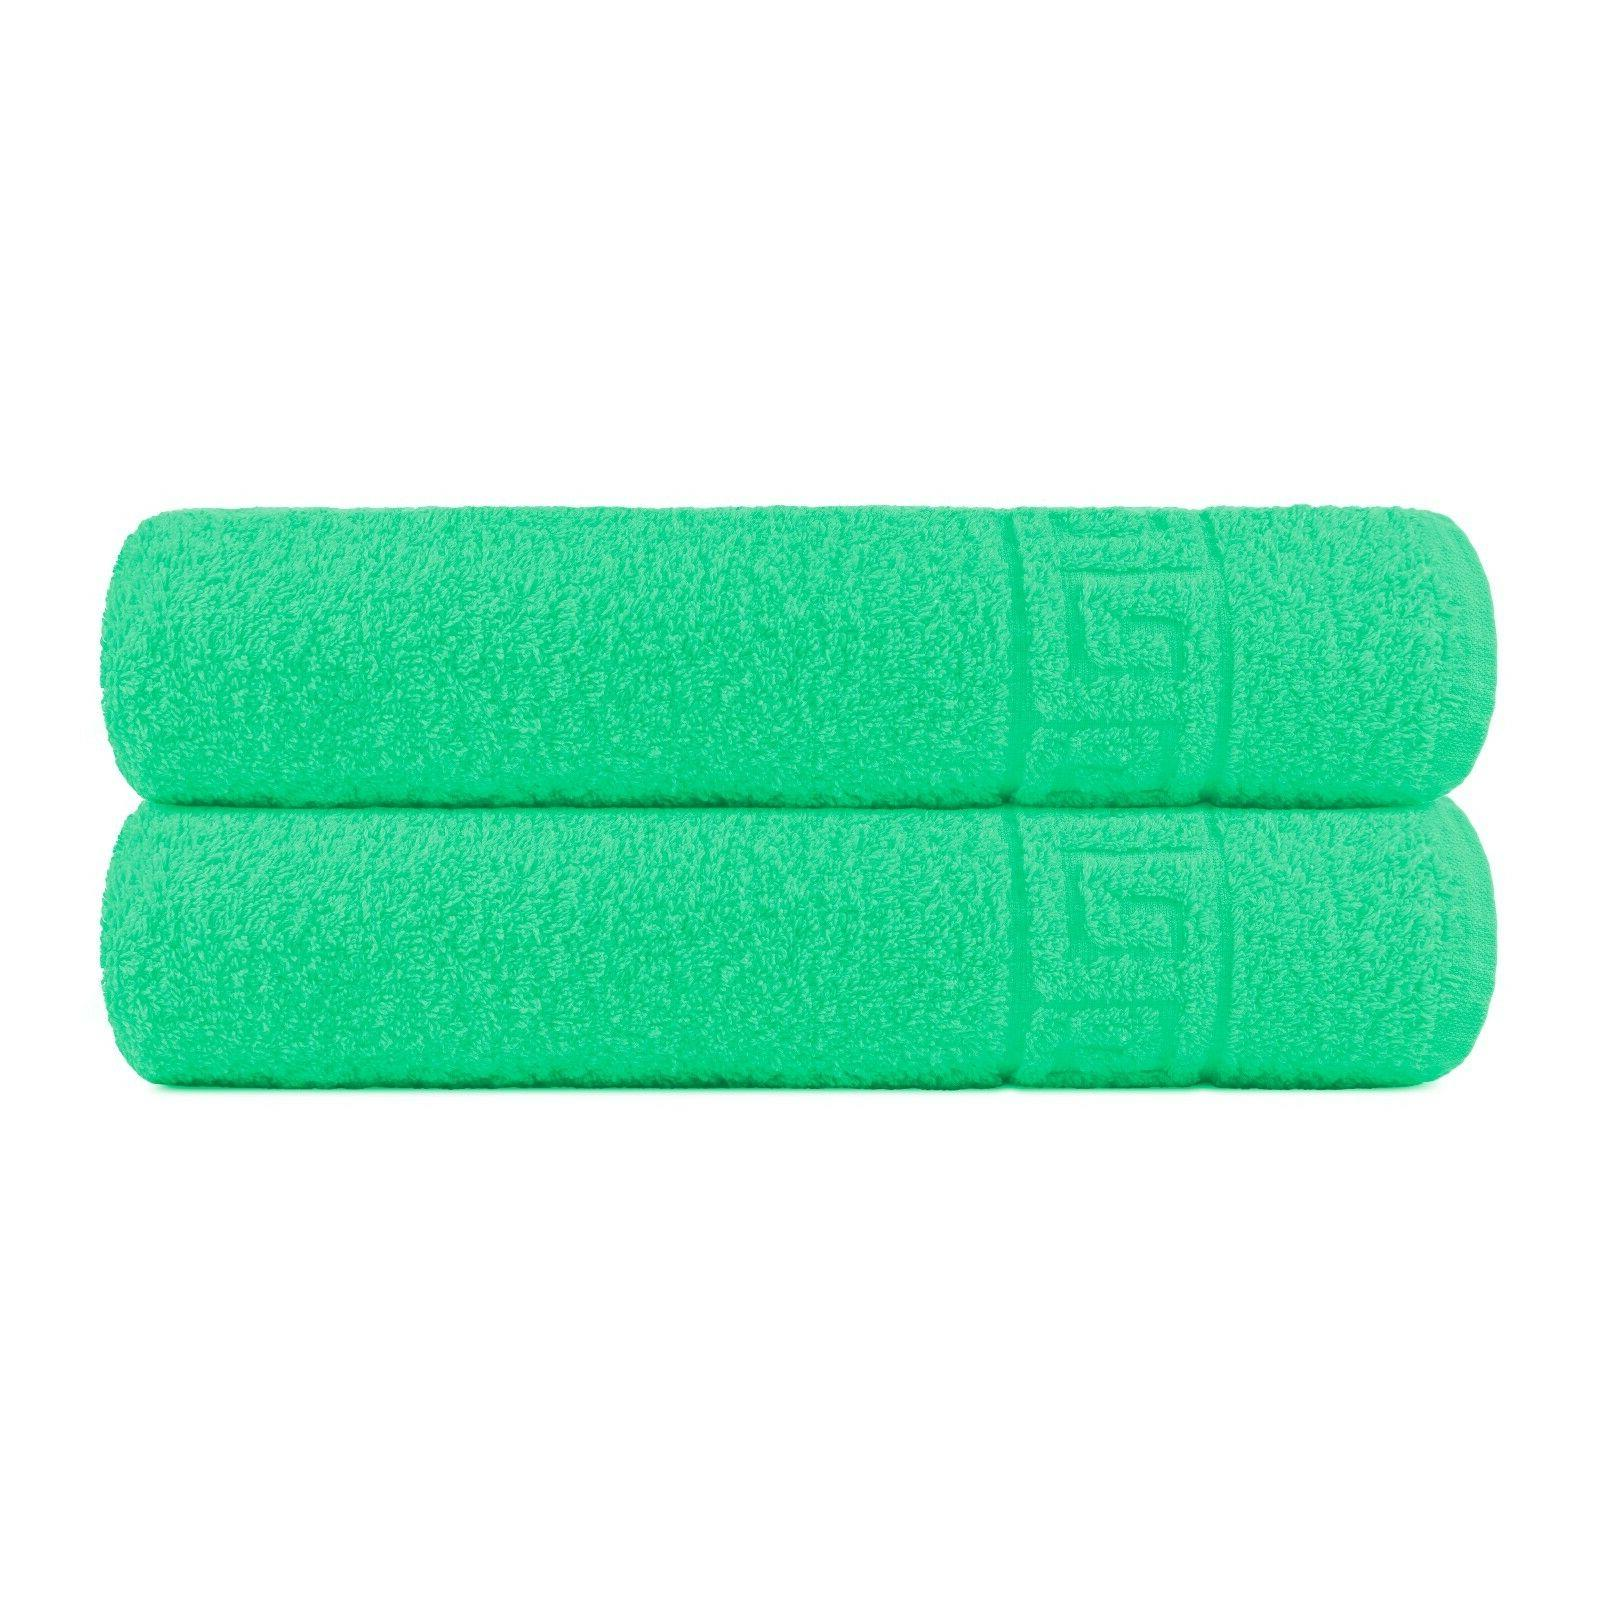 Bath Towels set 2 Bath 2 Towels Gym Cotton